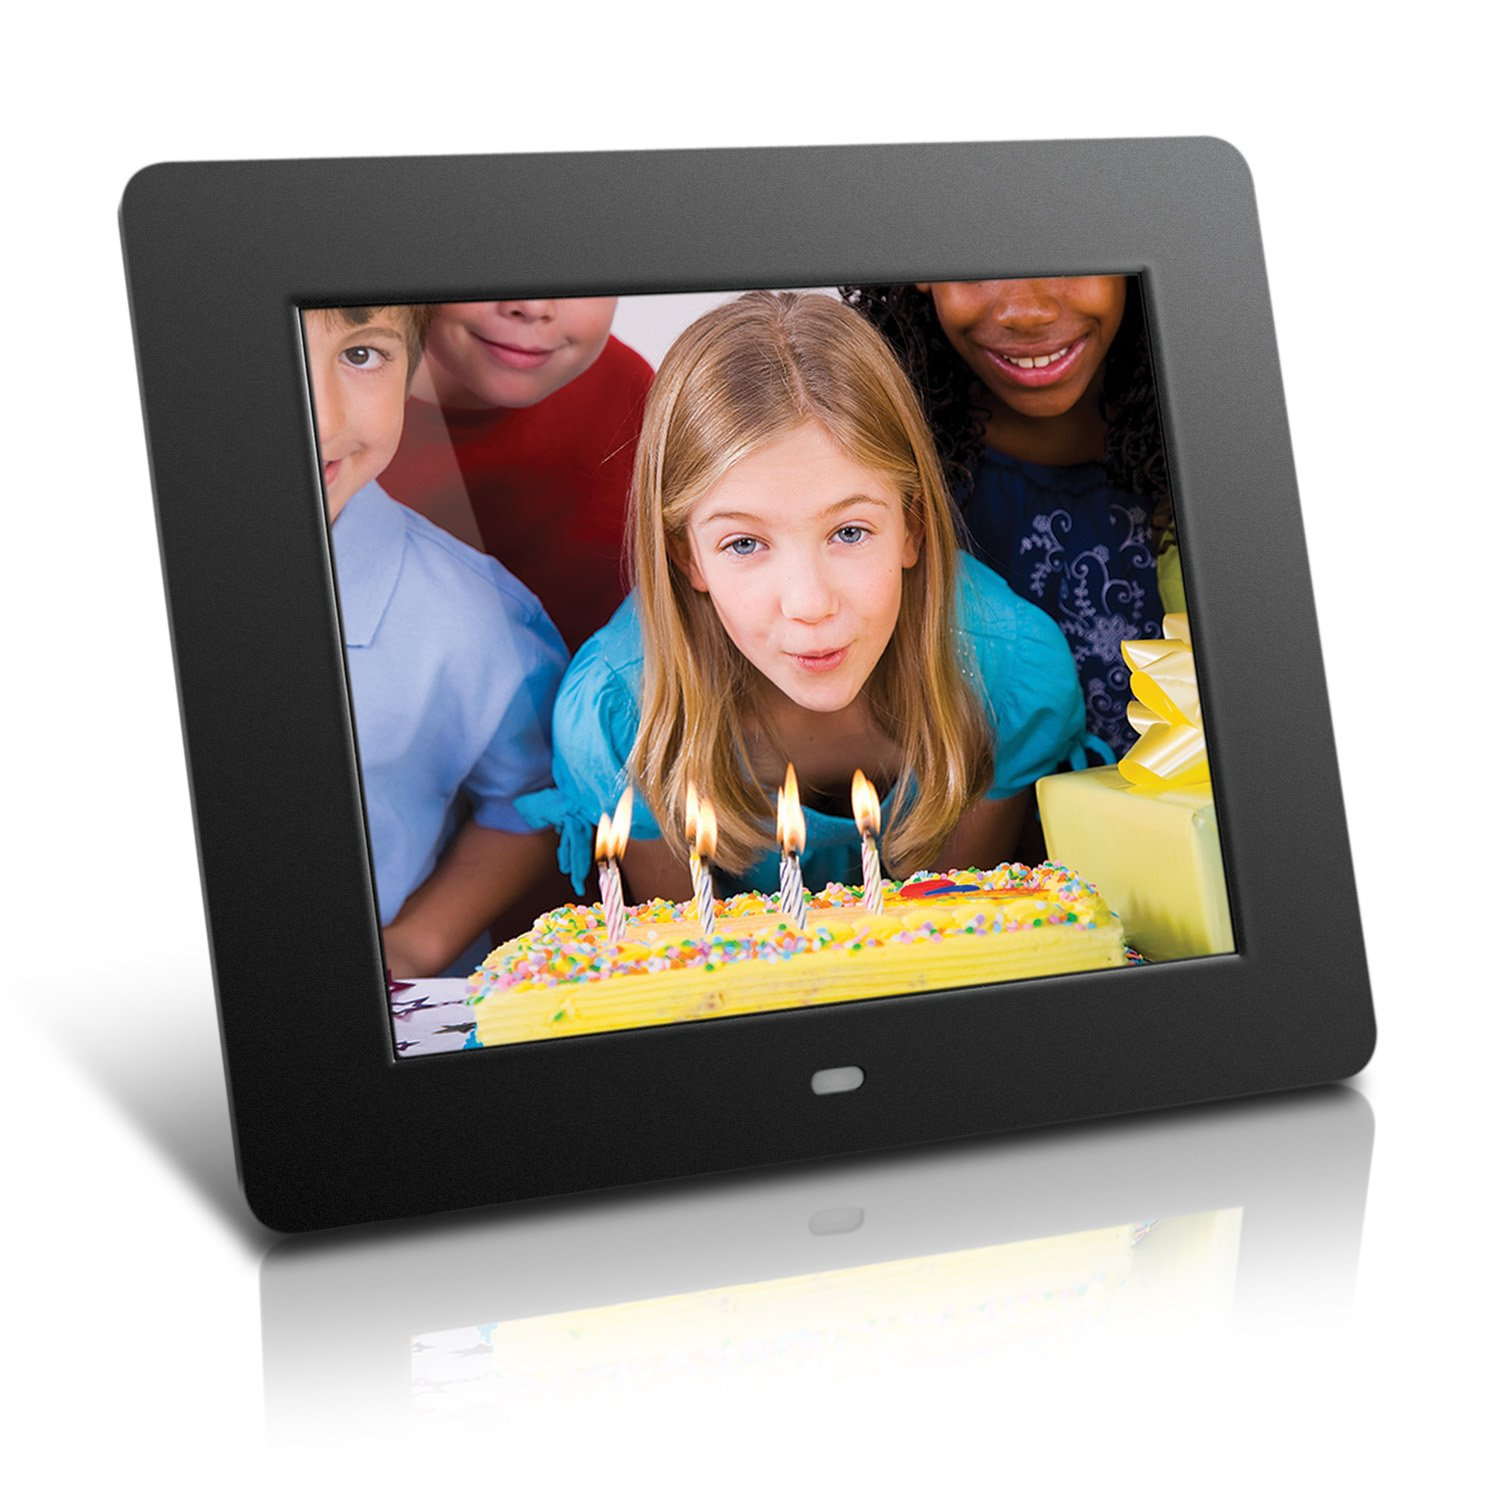 Aluratek (ADMPF108F) 8' Hi-Res Digital Photo Frame with 4GB Built-In Memory (800 x 600 Resolution), Photo/Music/Video Support MP3 & Media Players